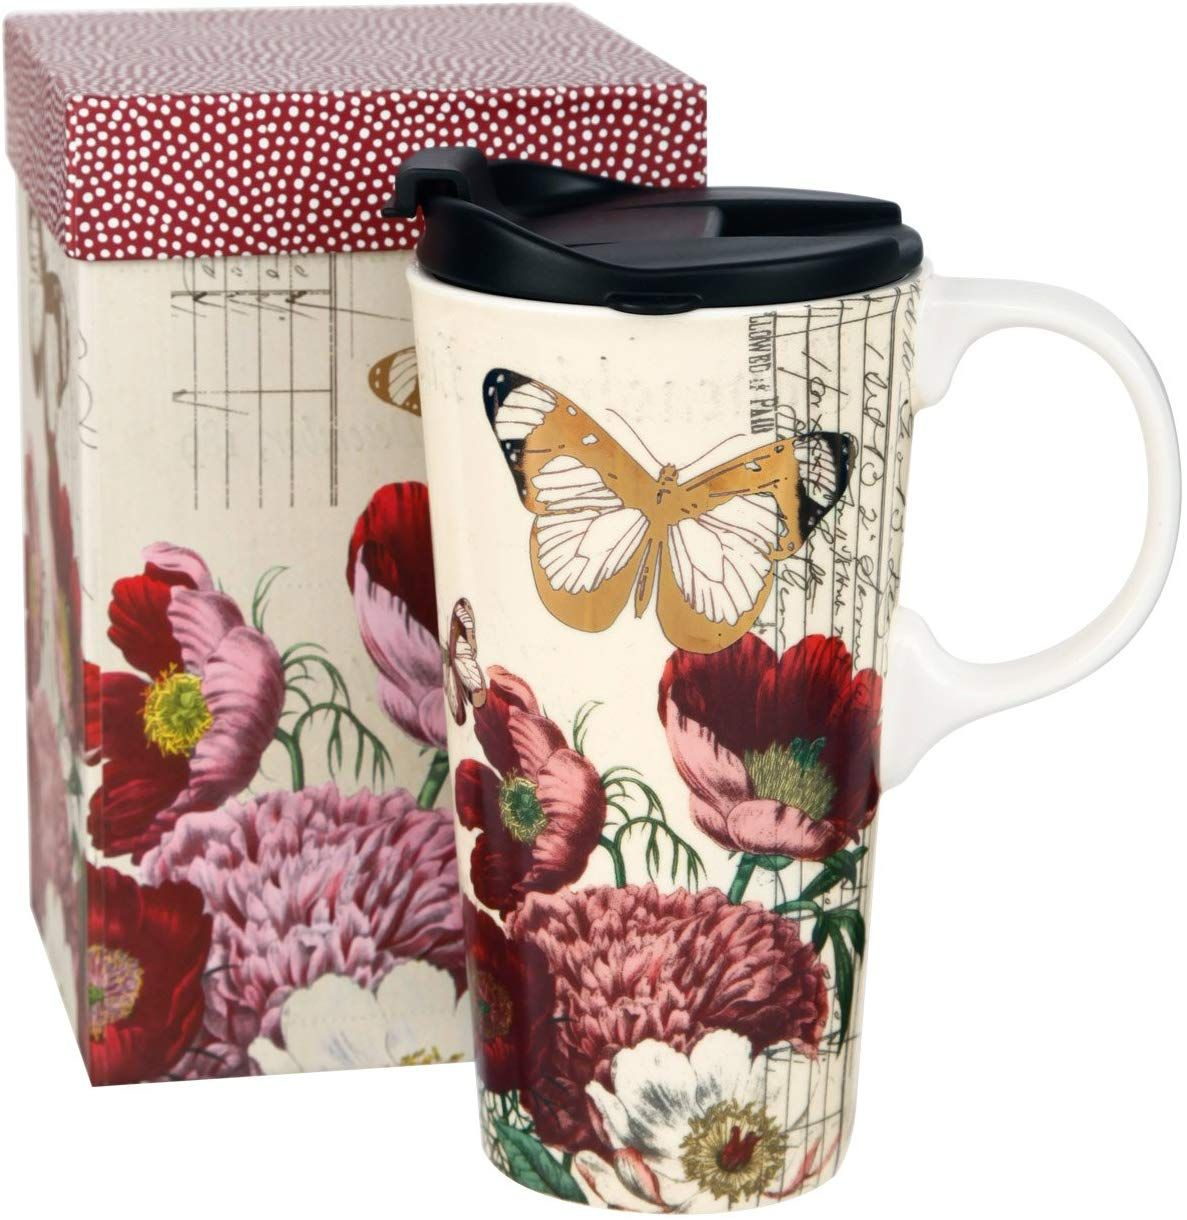 Topadorn 17 OZ Ceramic Mug Travel Cup with Lid and Handle